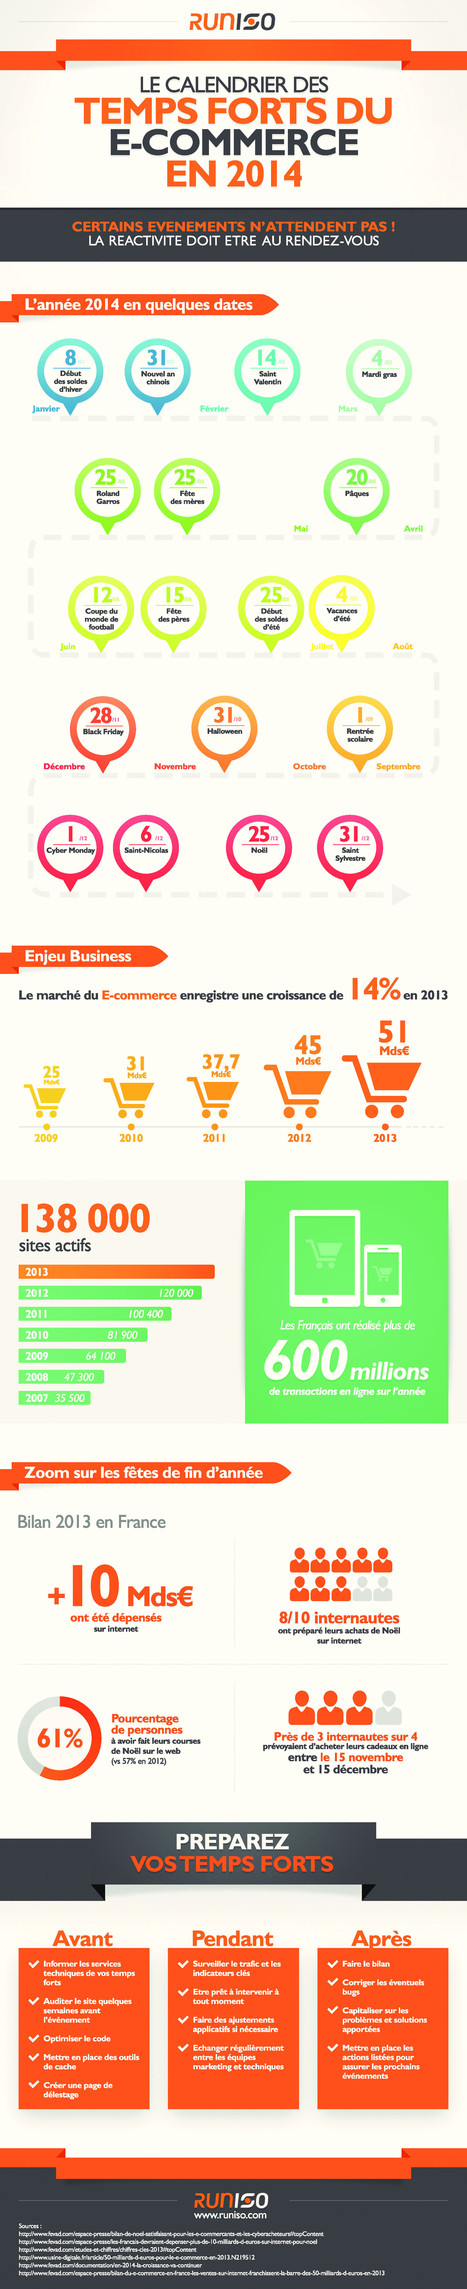 E-commerce : Dates & données clés de l'année 2014 - WebLife | Marketing et Numérique scooped by Bordeaux Consultants International | Scoop.it